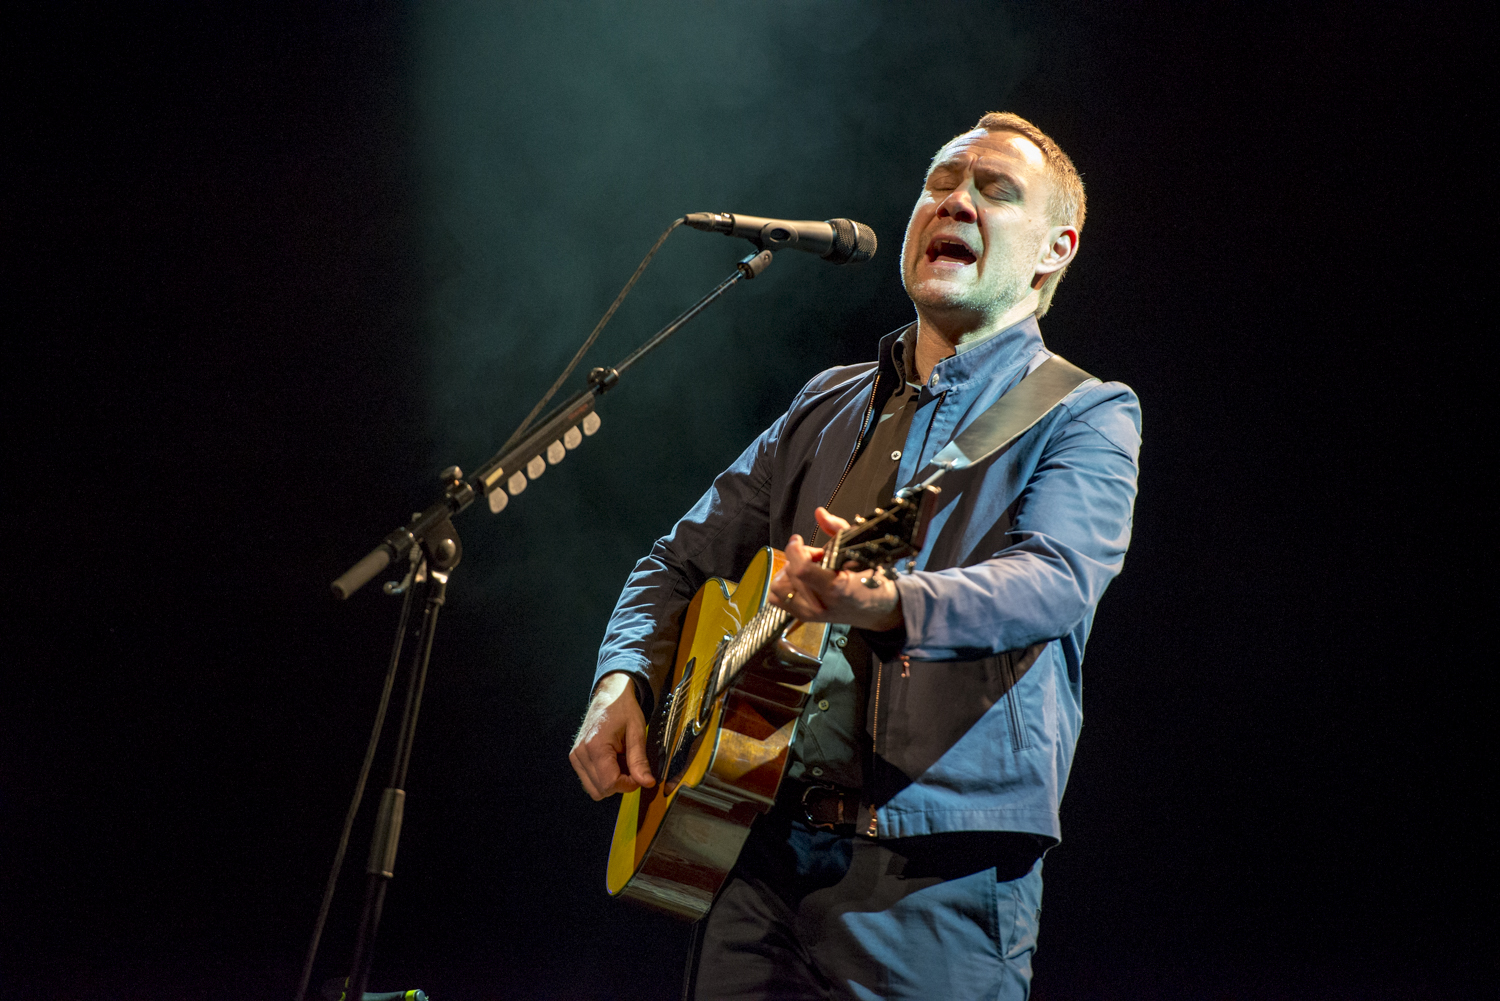 David Gray @ De Roma 2016 (Nick De Baerdemaeker)